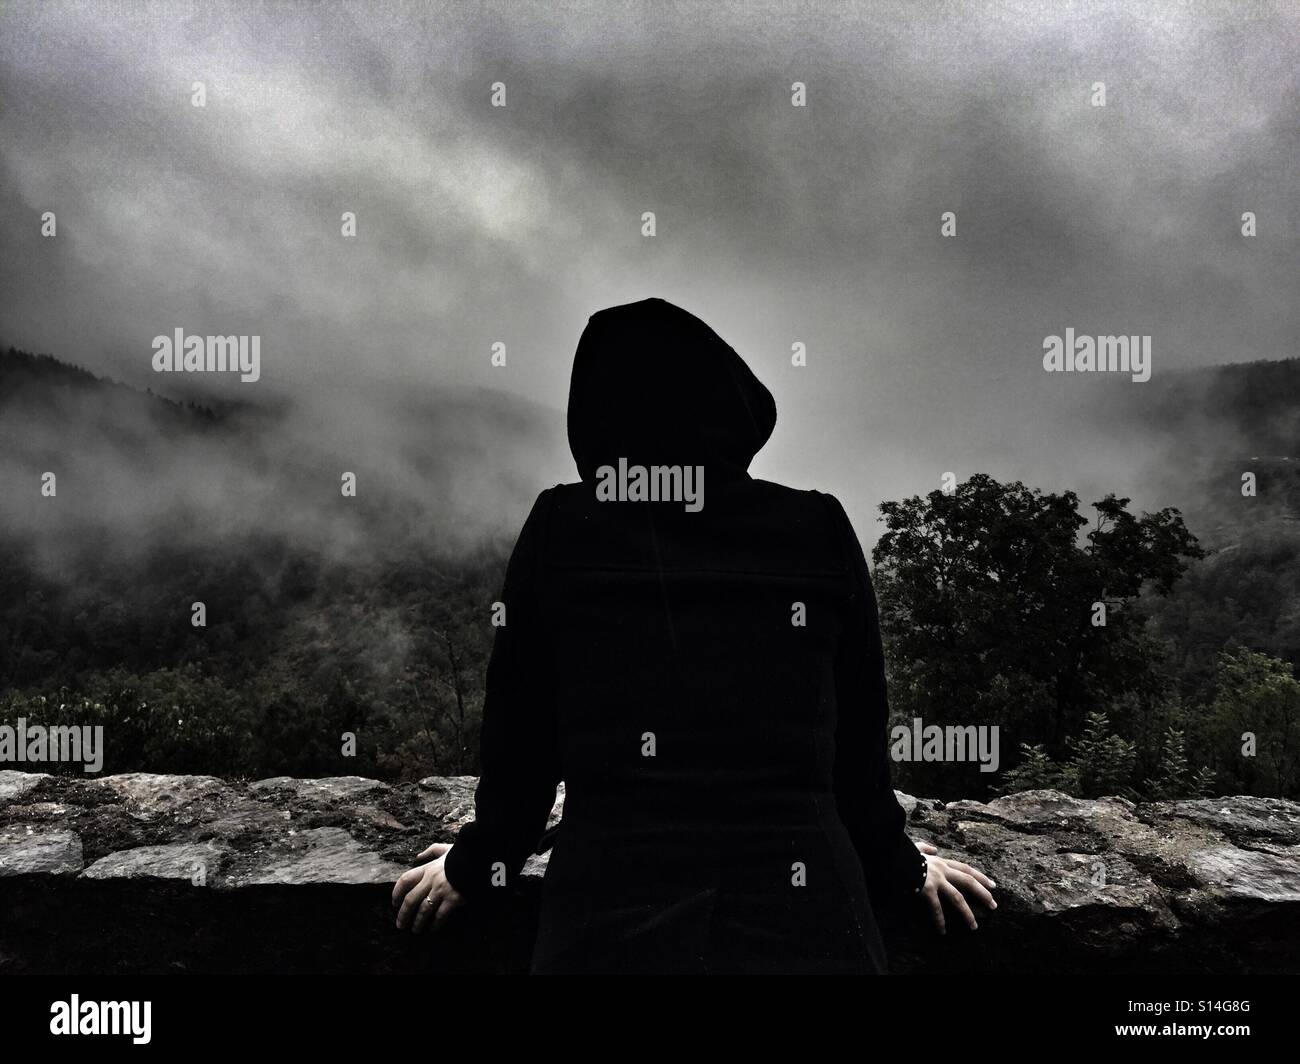 Darkness - Stock Image